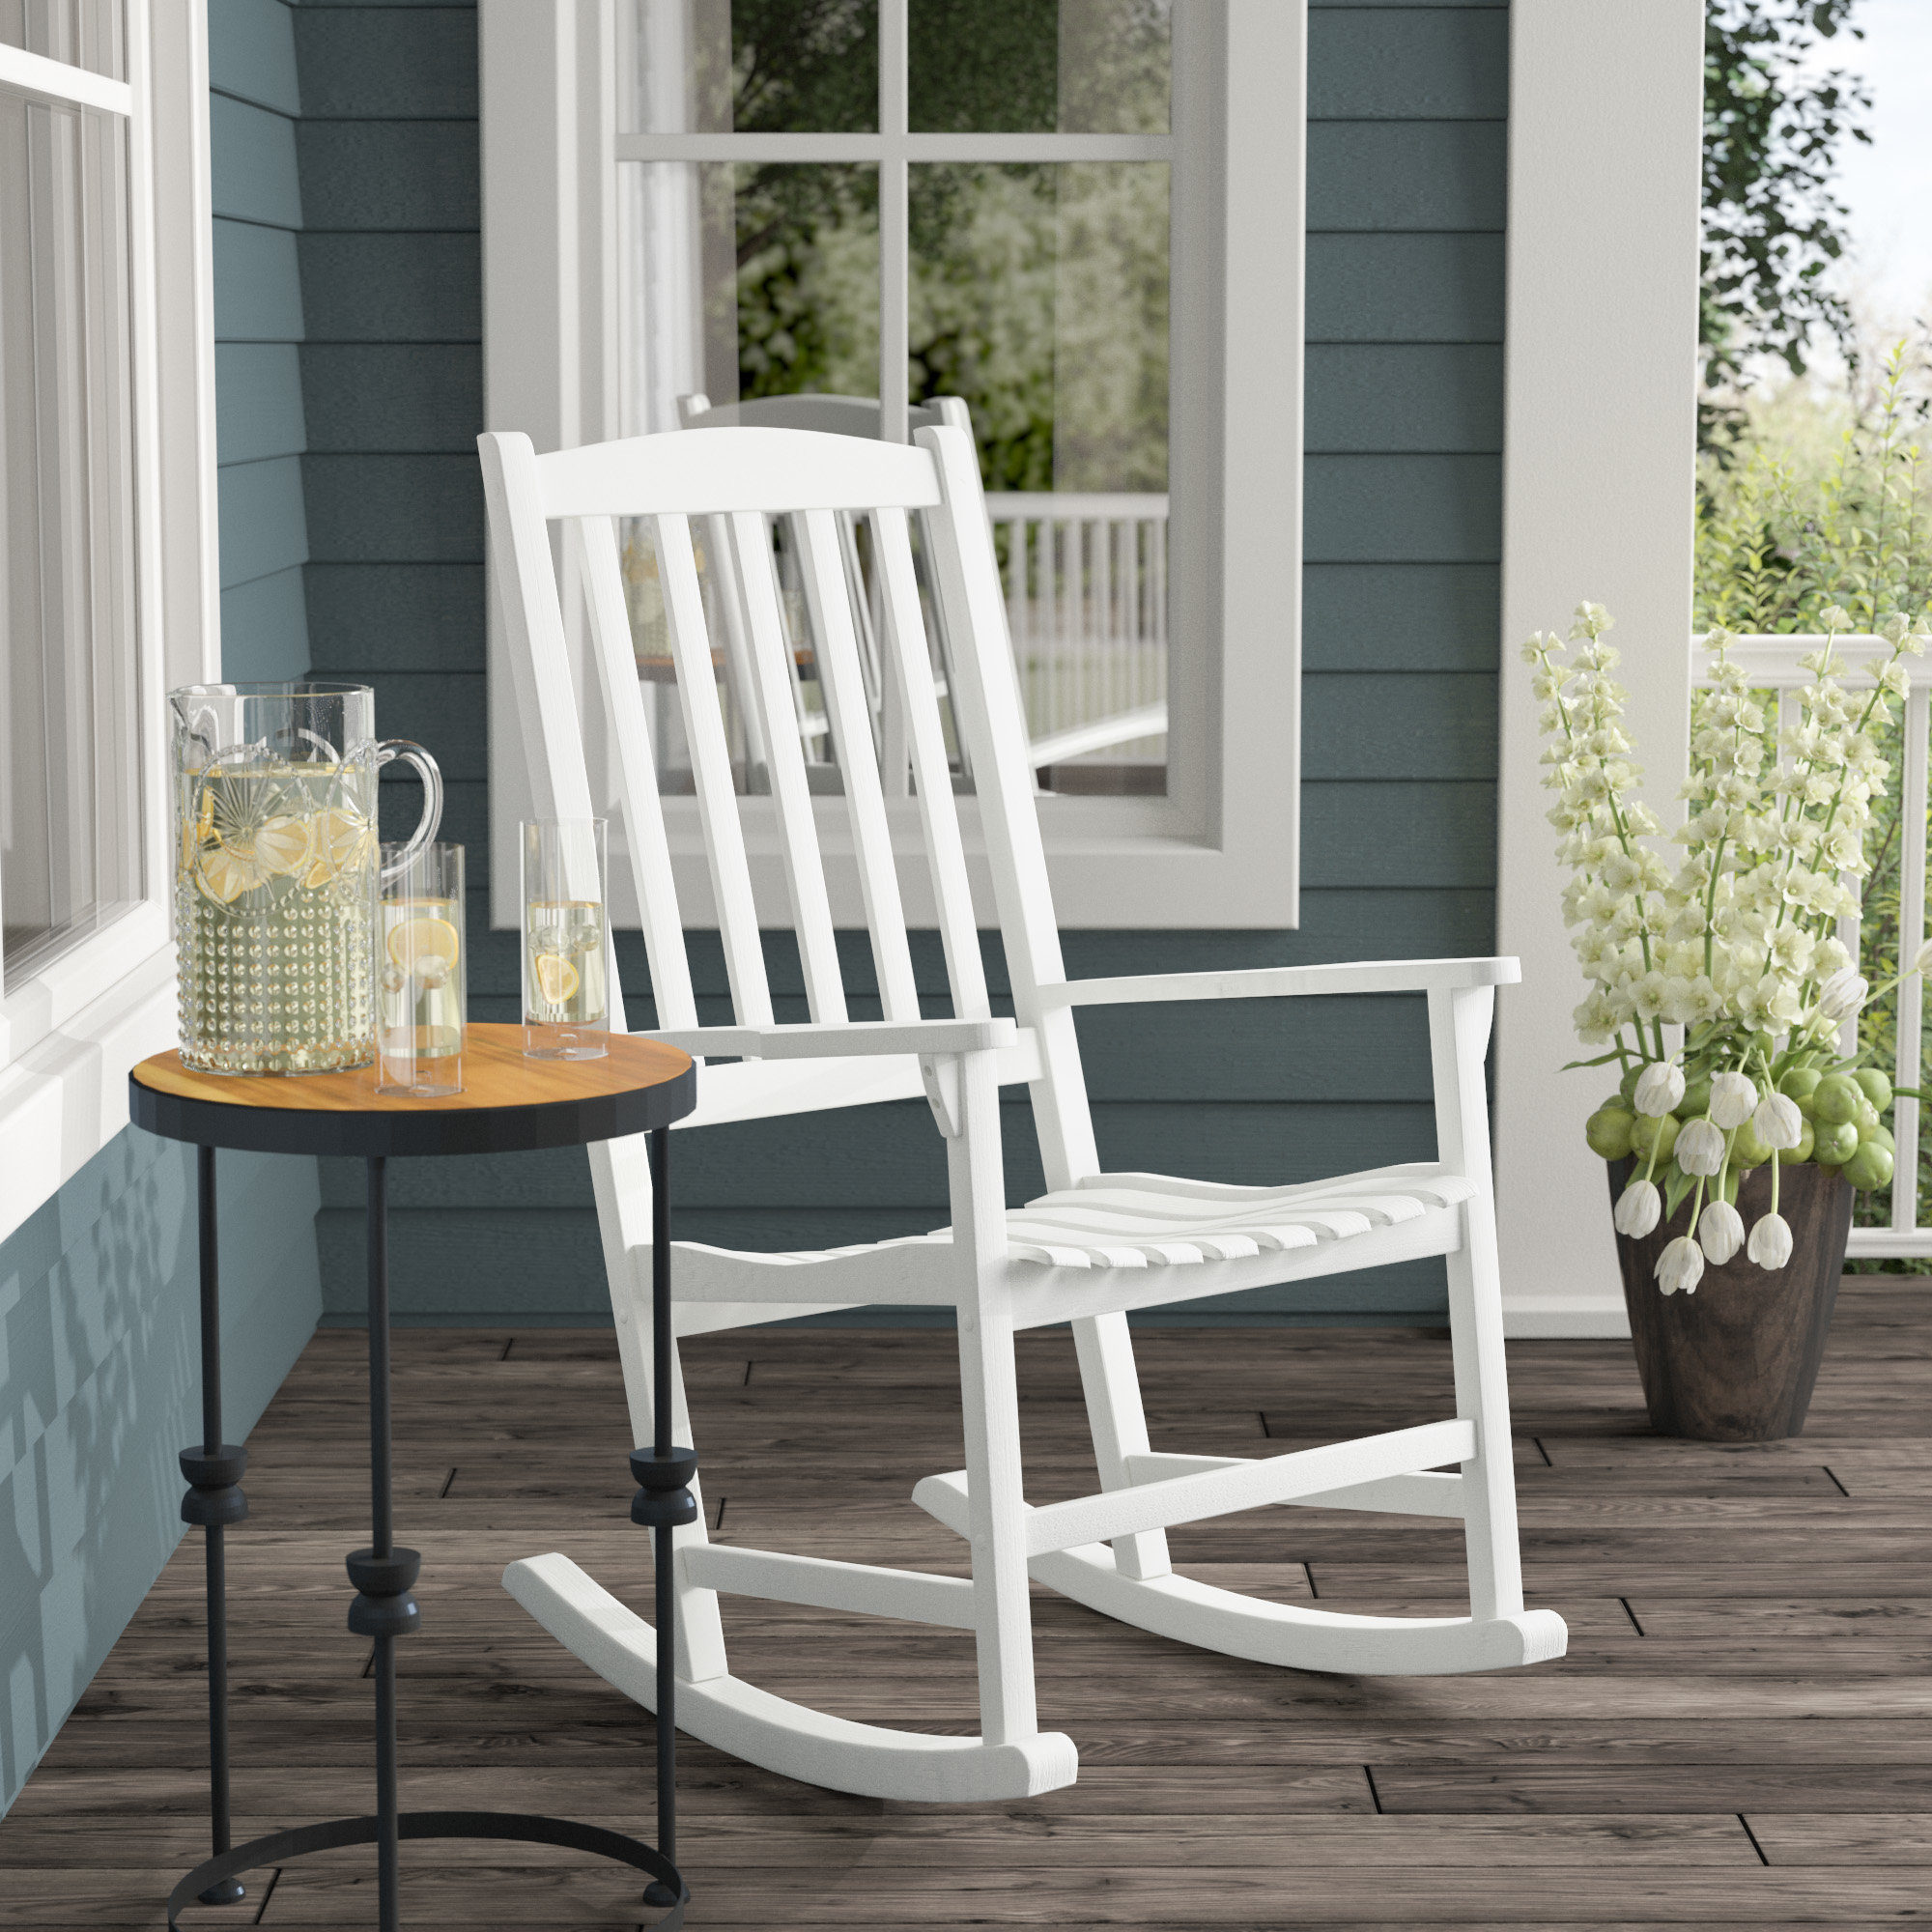 Rajesh Rocking Chair With Regard To Rocking Chairs In Cream Fabric And White (#16 of 20)